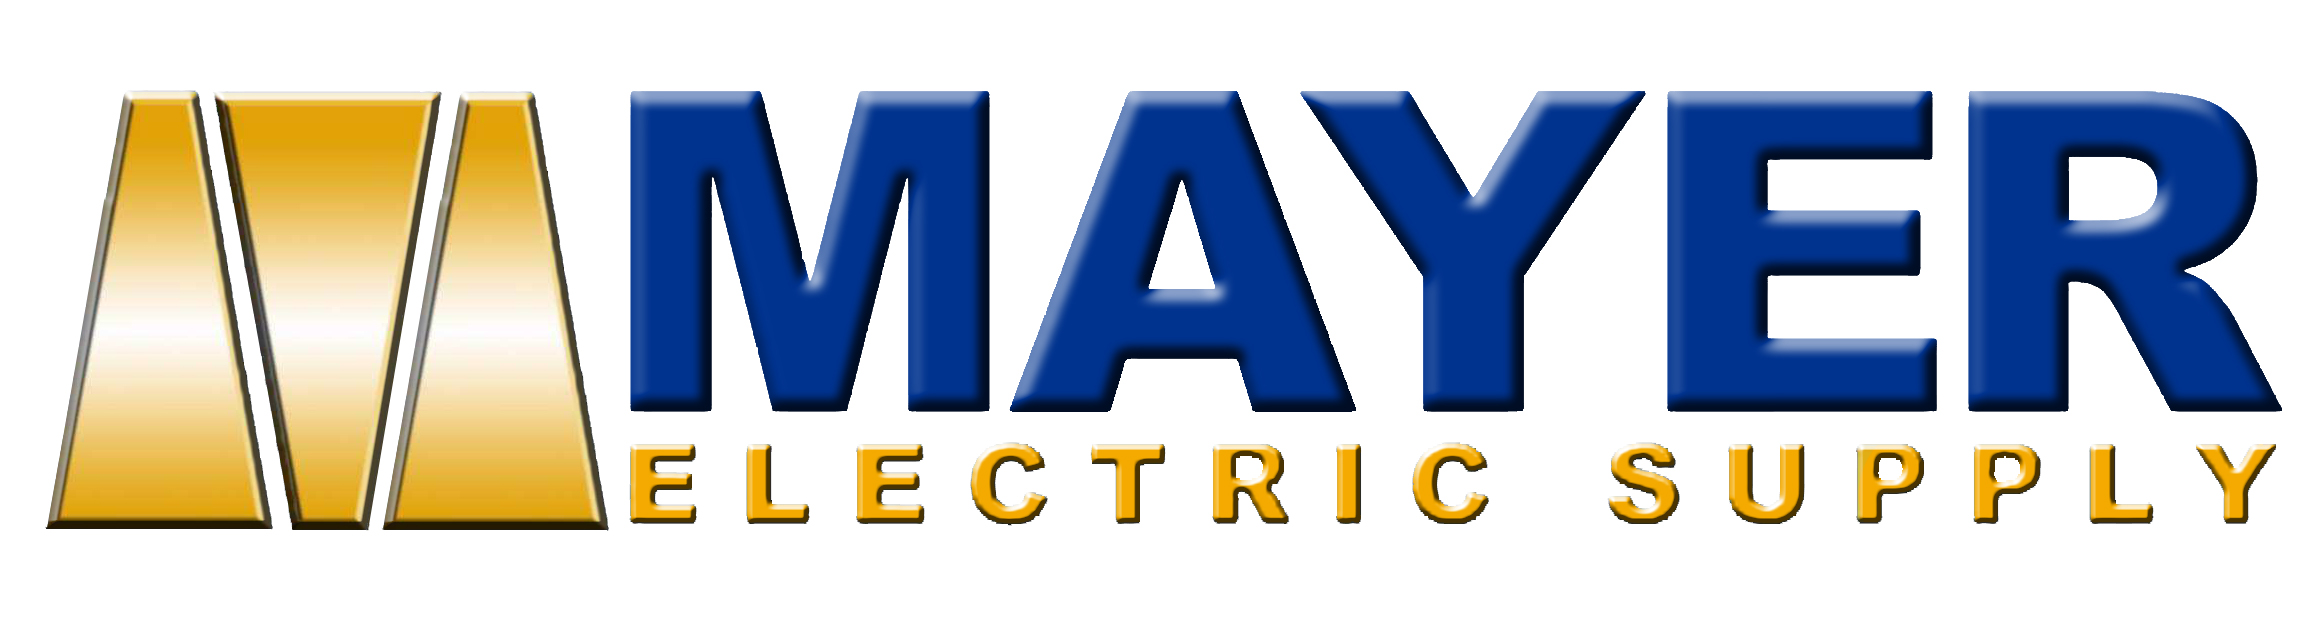 Mayer Electric Supply Co., Inc. In Charlottesville, VA. Distributor Of  Industrial